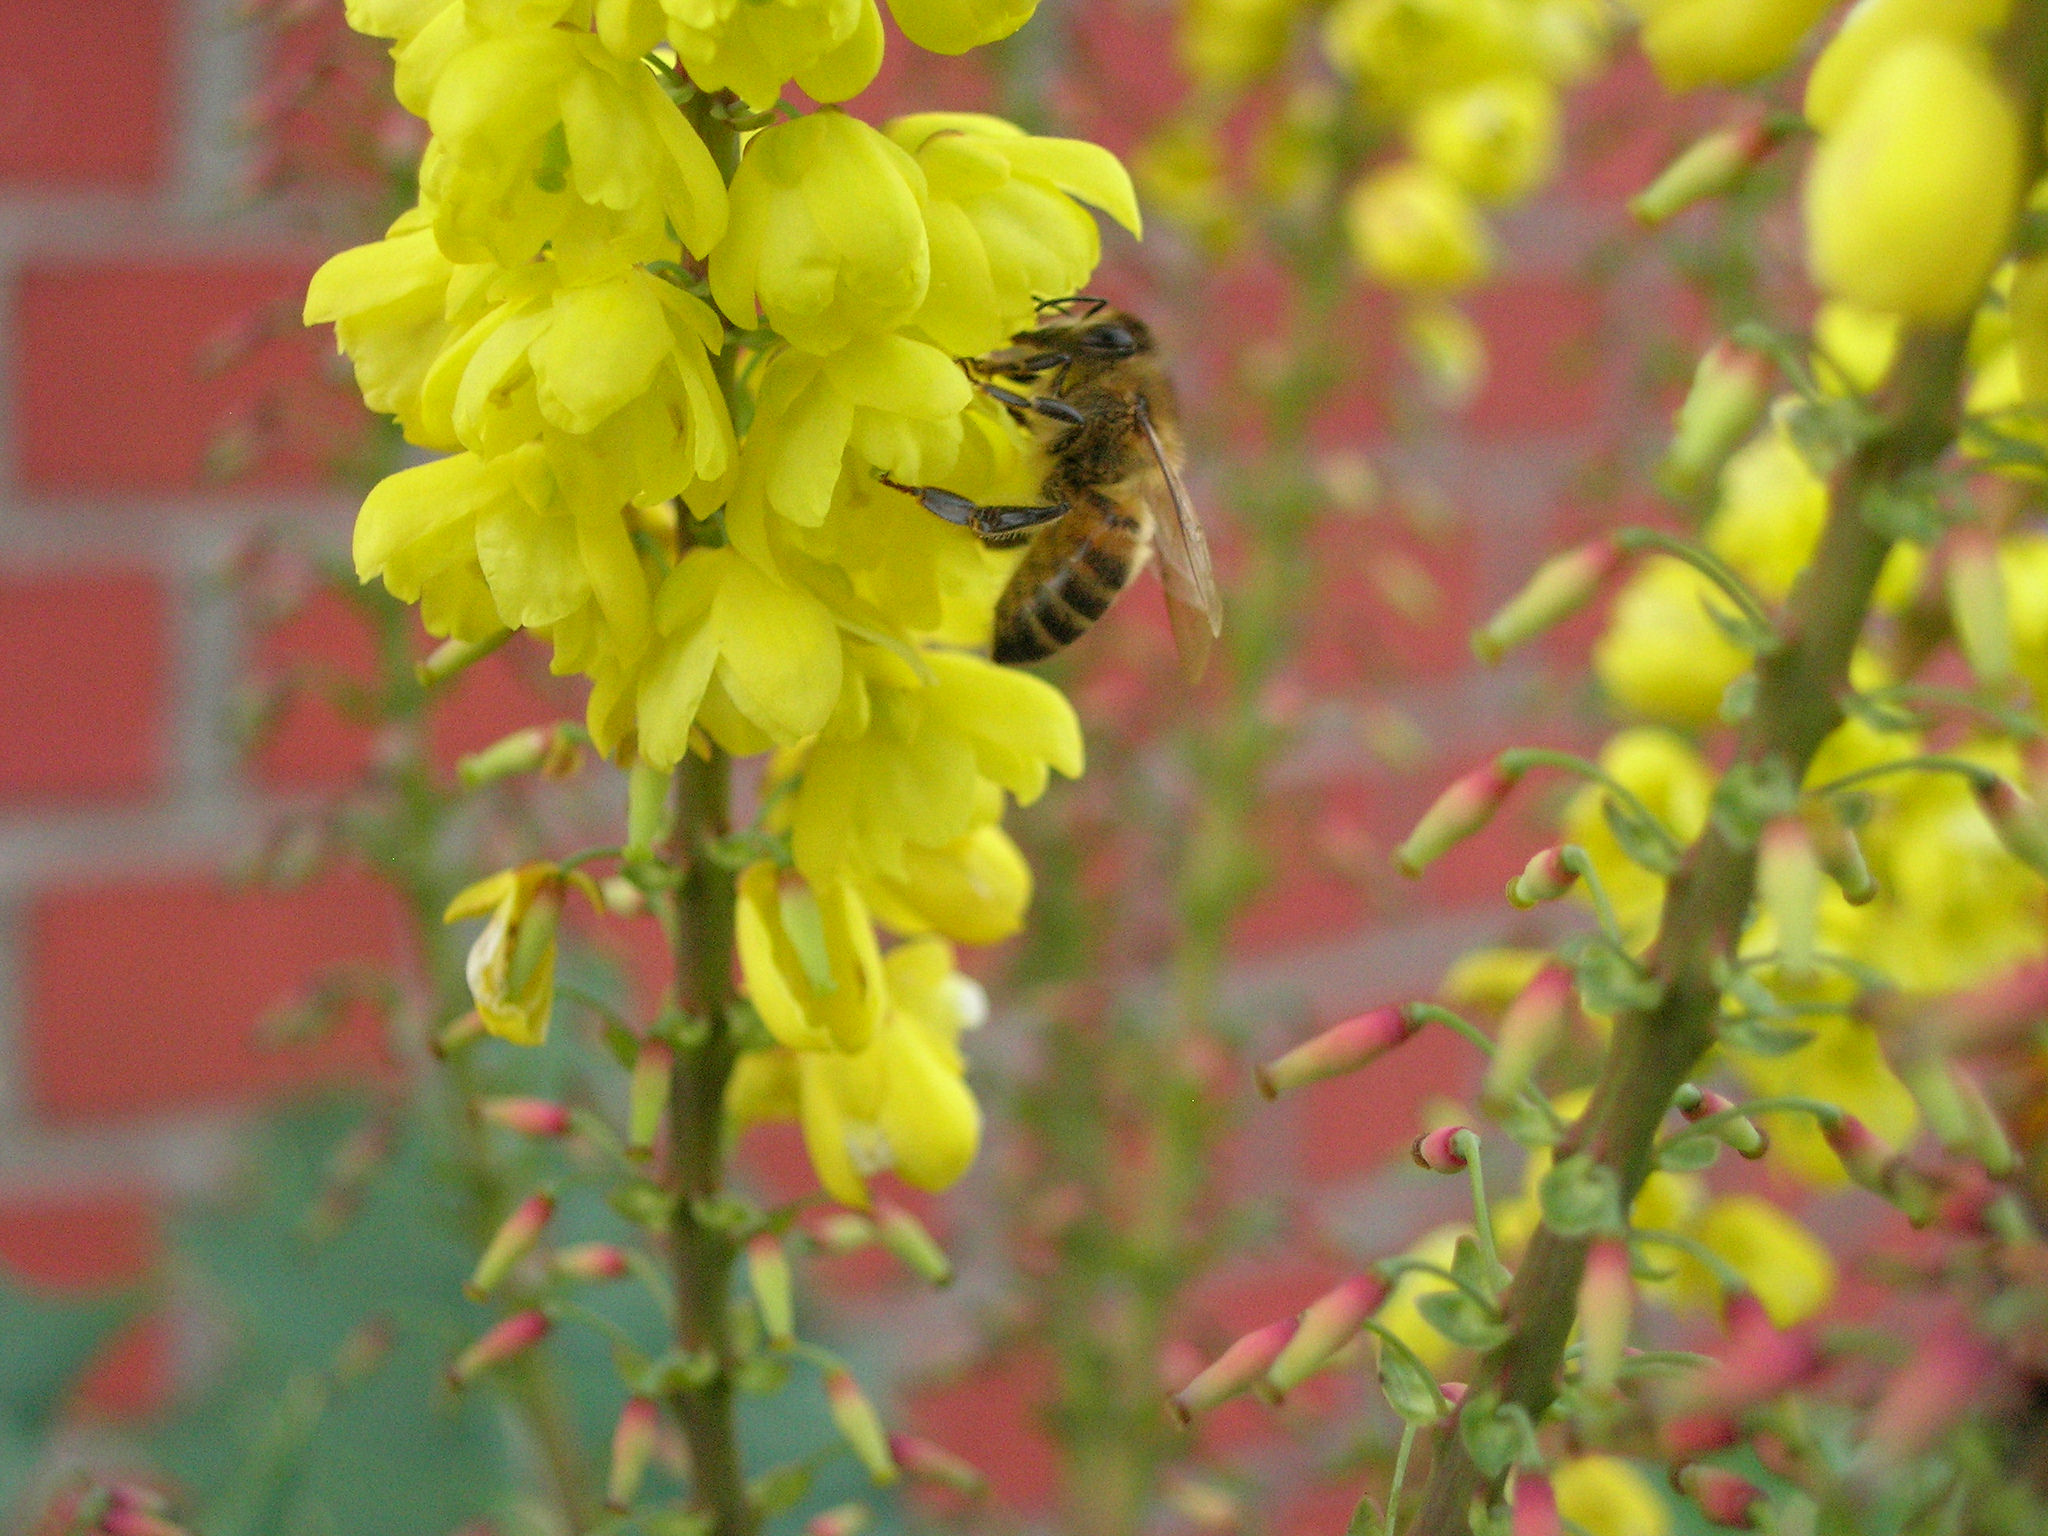 These 8 winter-blooming plants give bees needed nourishment